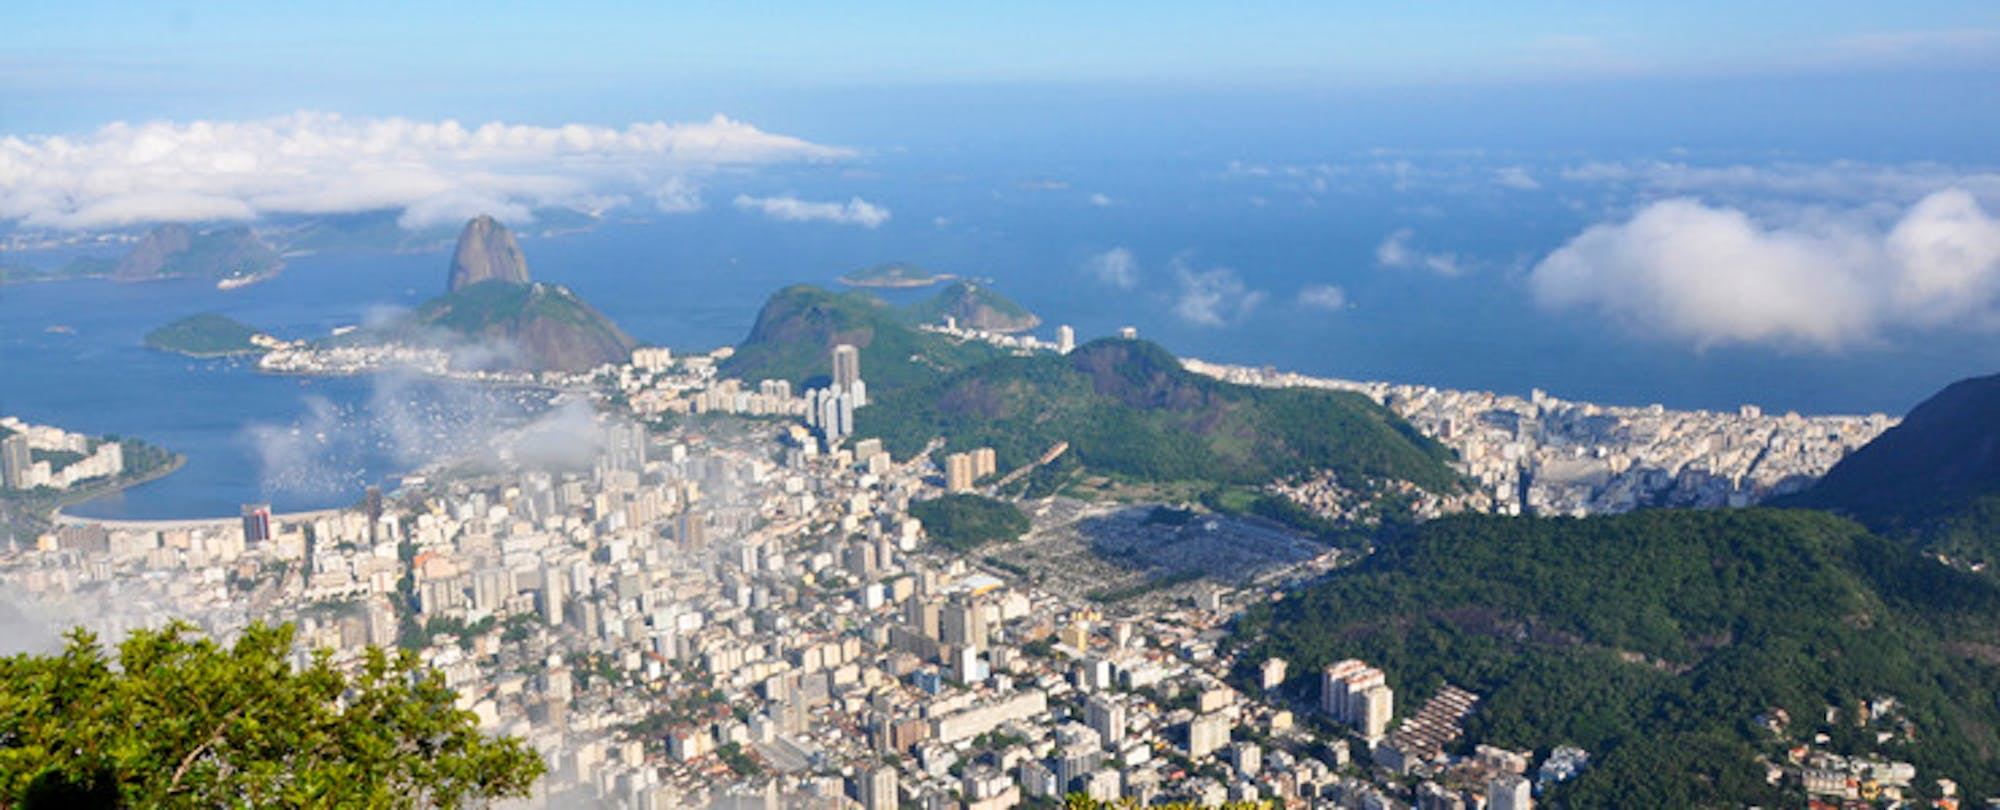 Brazil's Enticing Offer to Woo Entrepreneurs